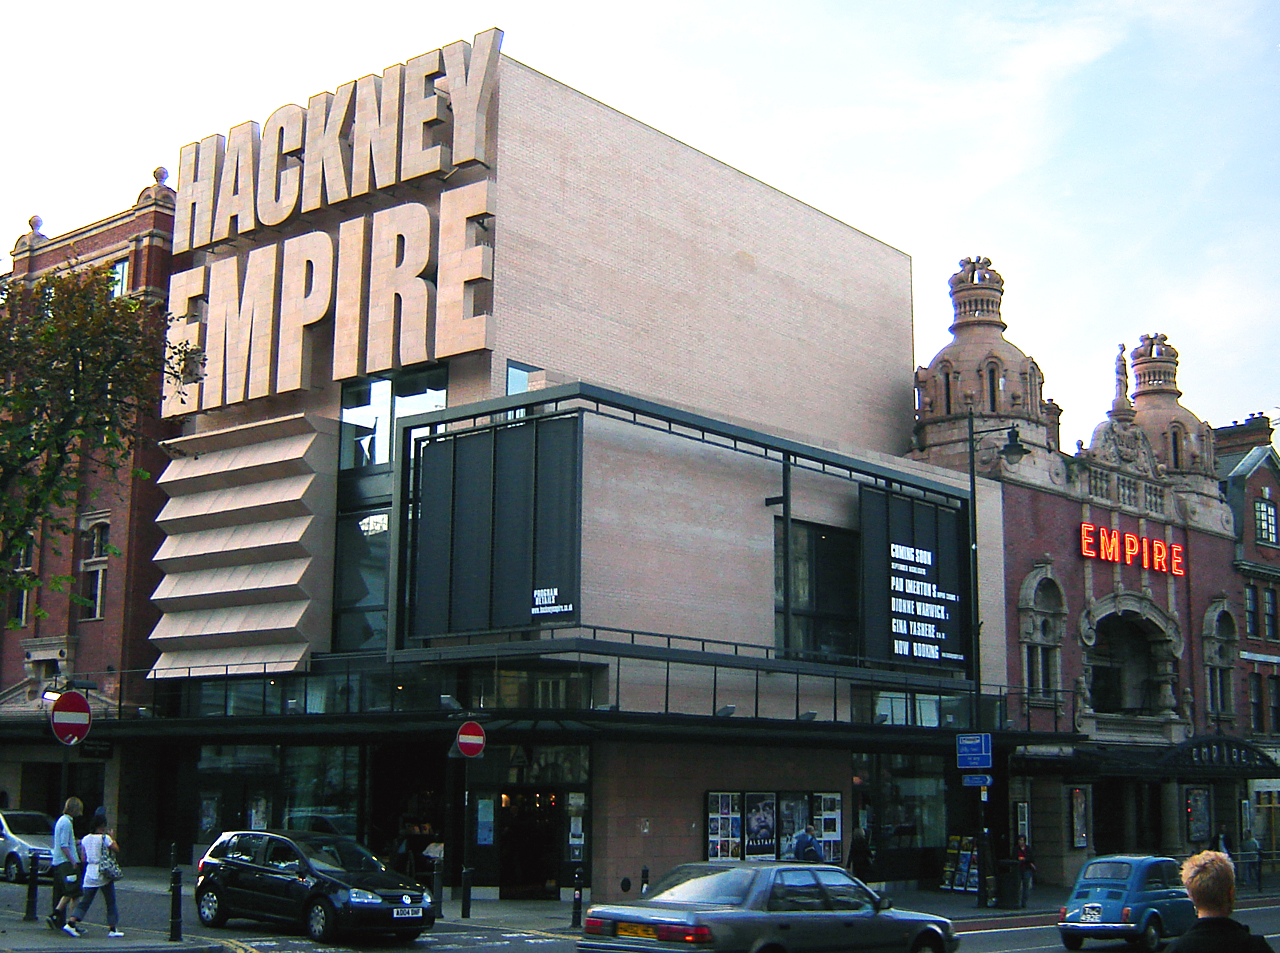 The refurbished Hackney Empire, built in 1901, retains the original structure, but adds modern facilities. (Photo: Fin Fahey / Wiki Commons)